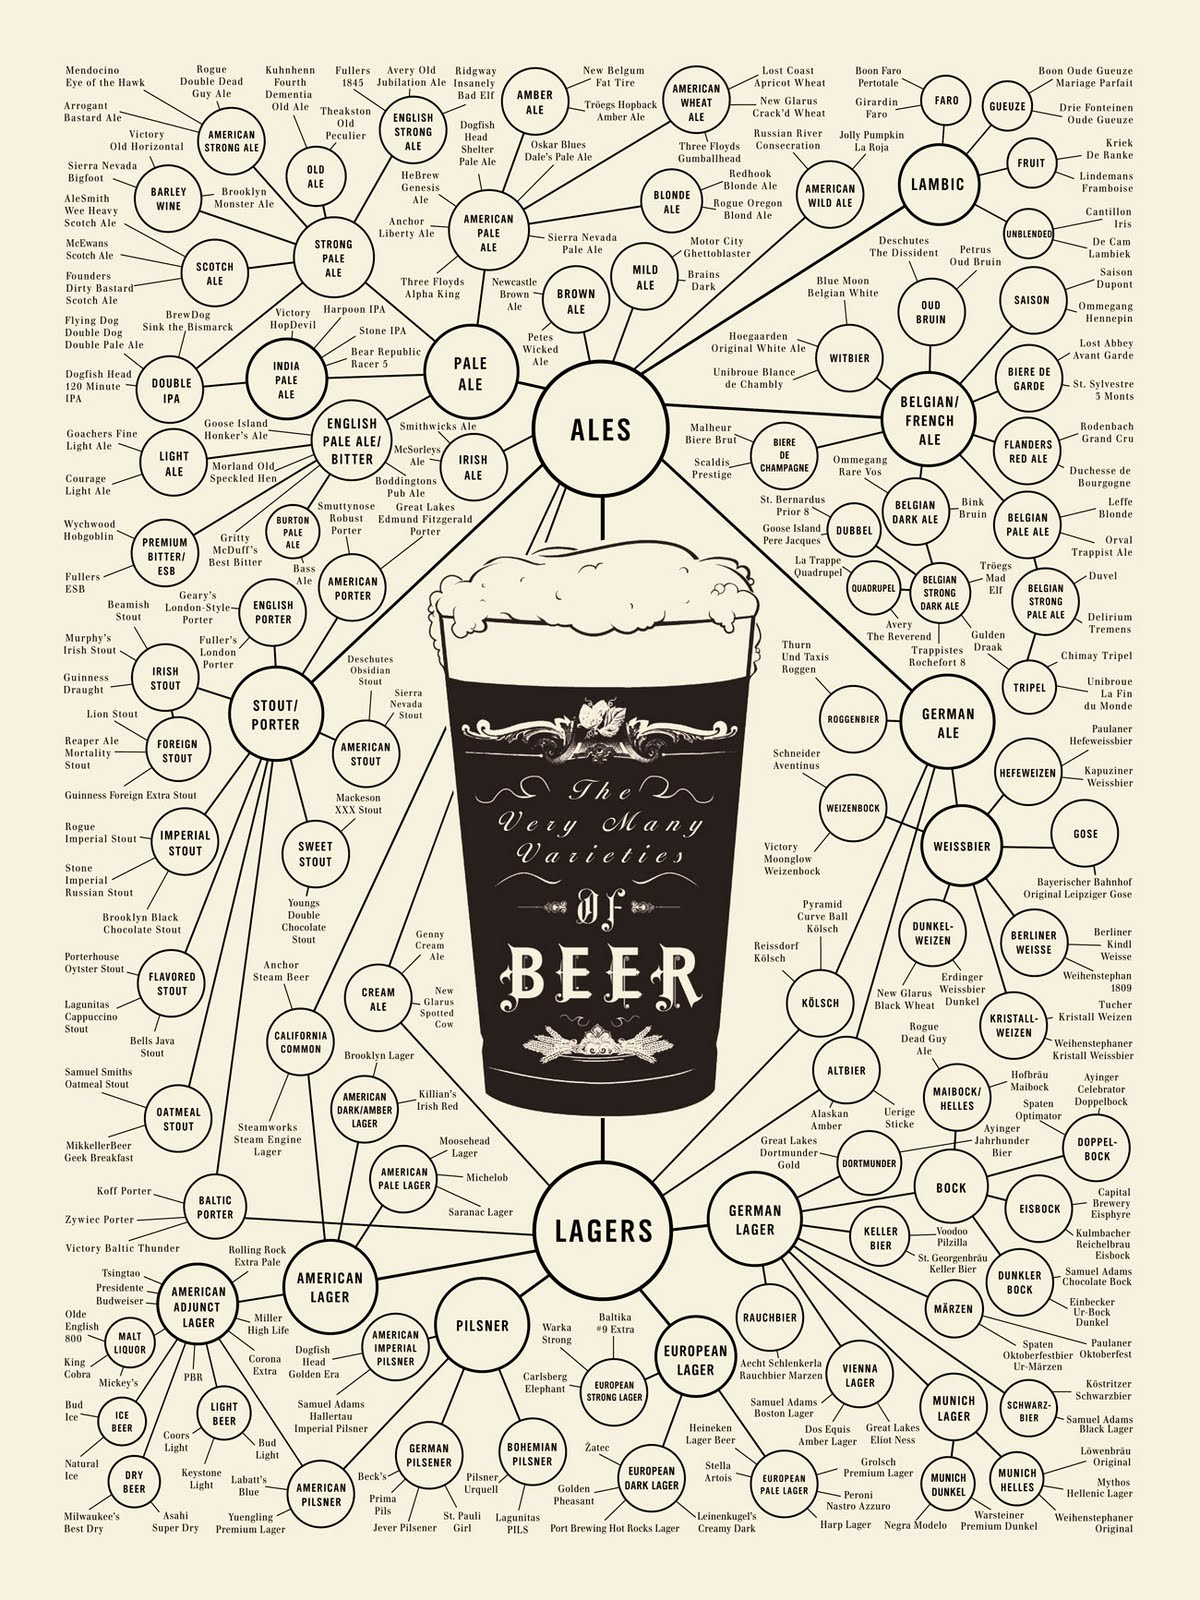 The Very Many Varieties of Beer